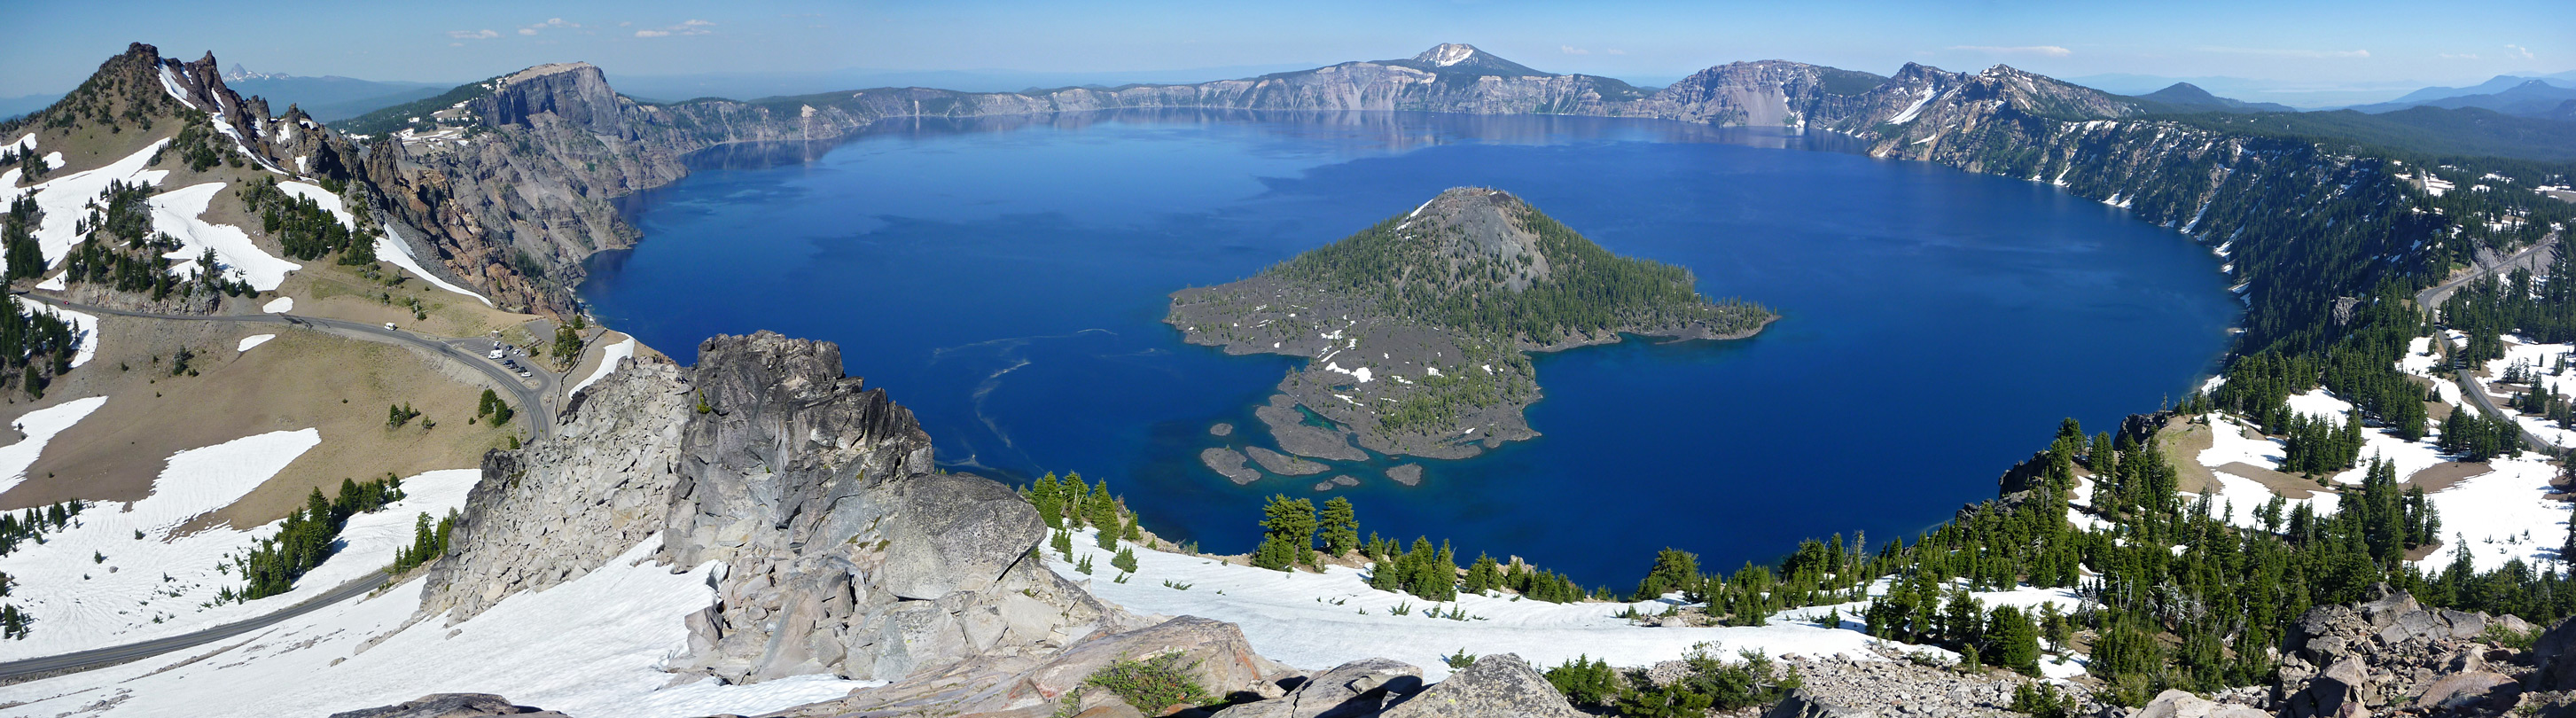 Panoramic view over Crater Lake